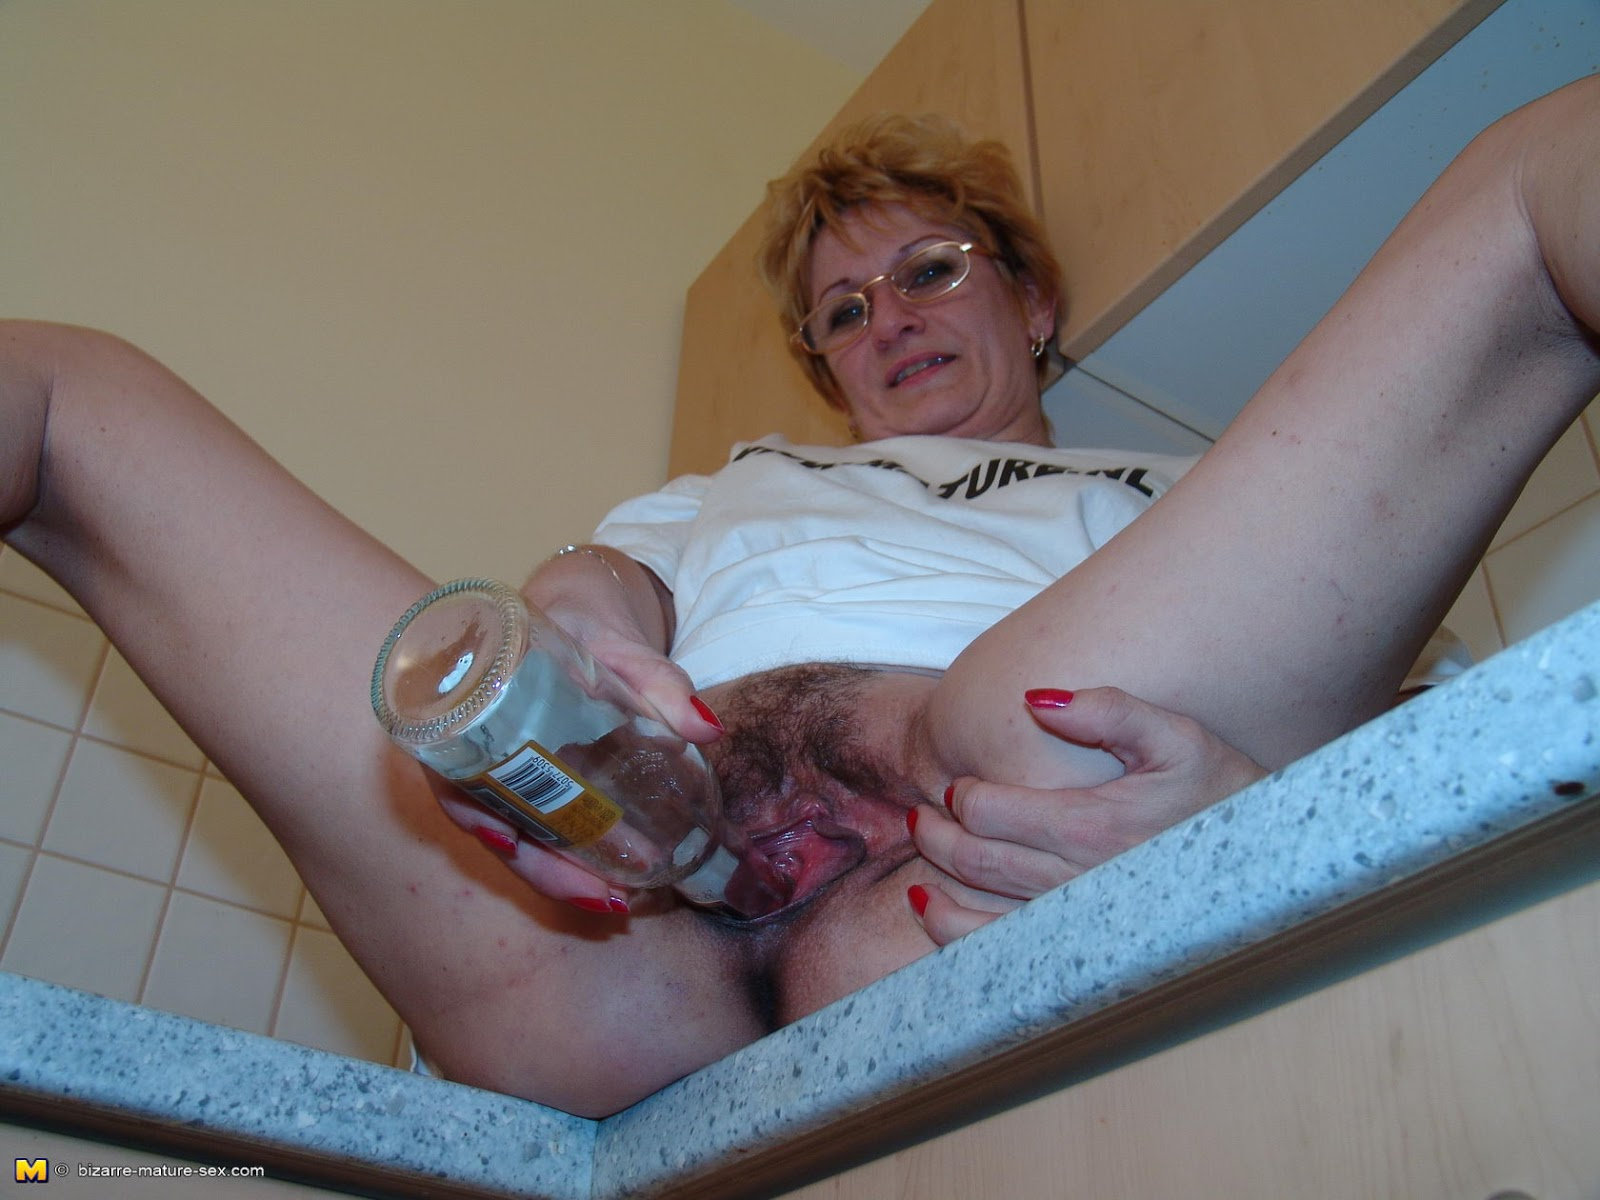 Are mistaken. older women masturbating seems very